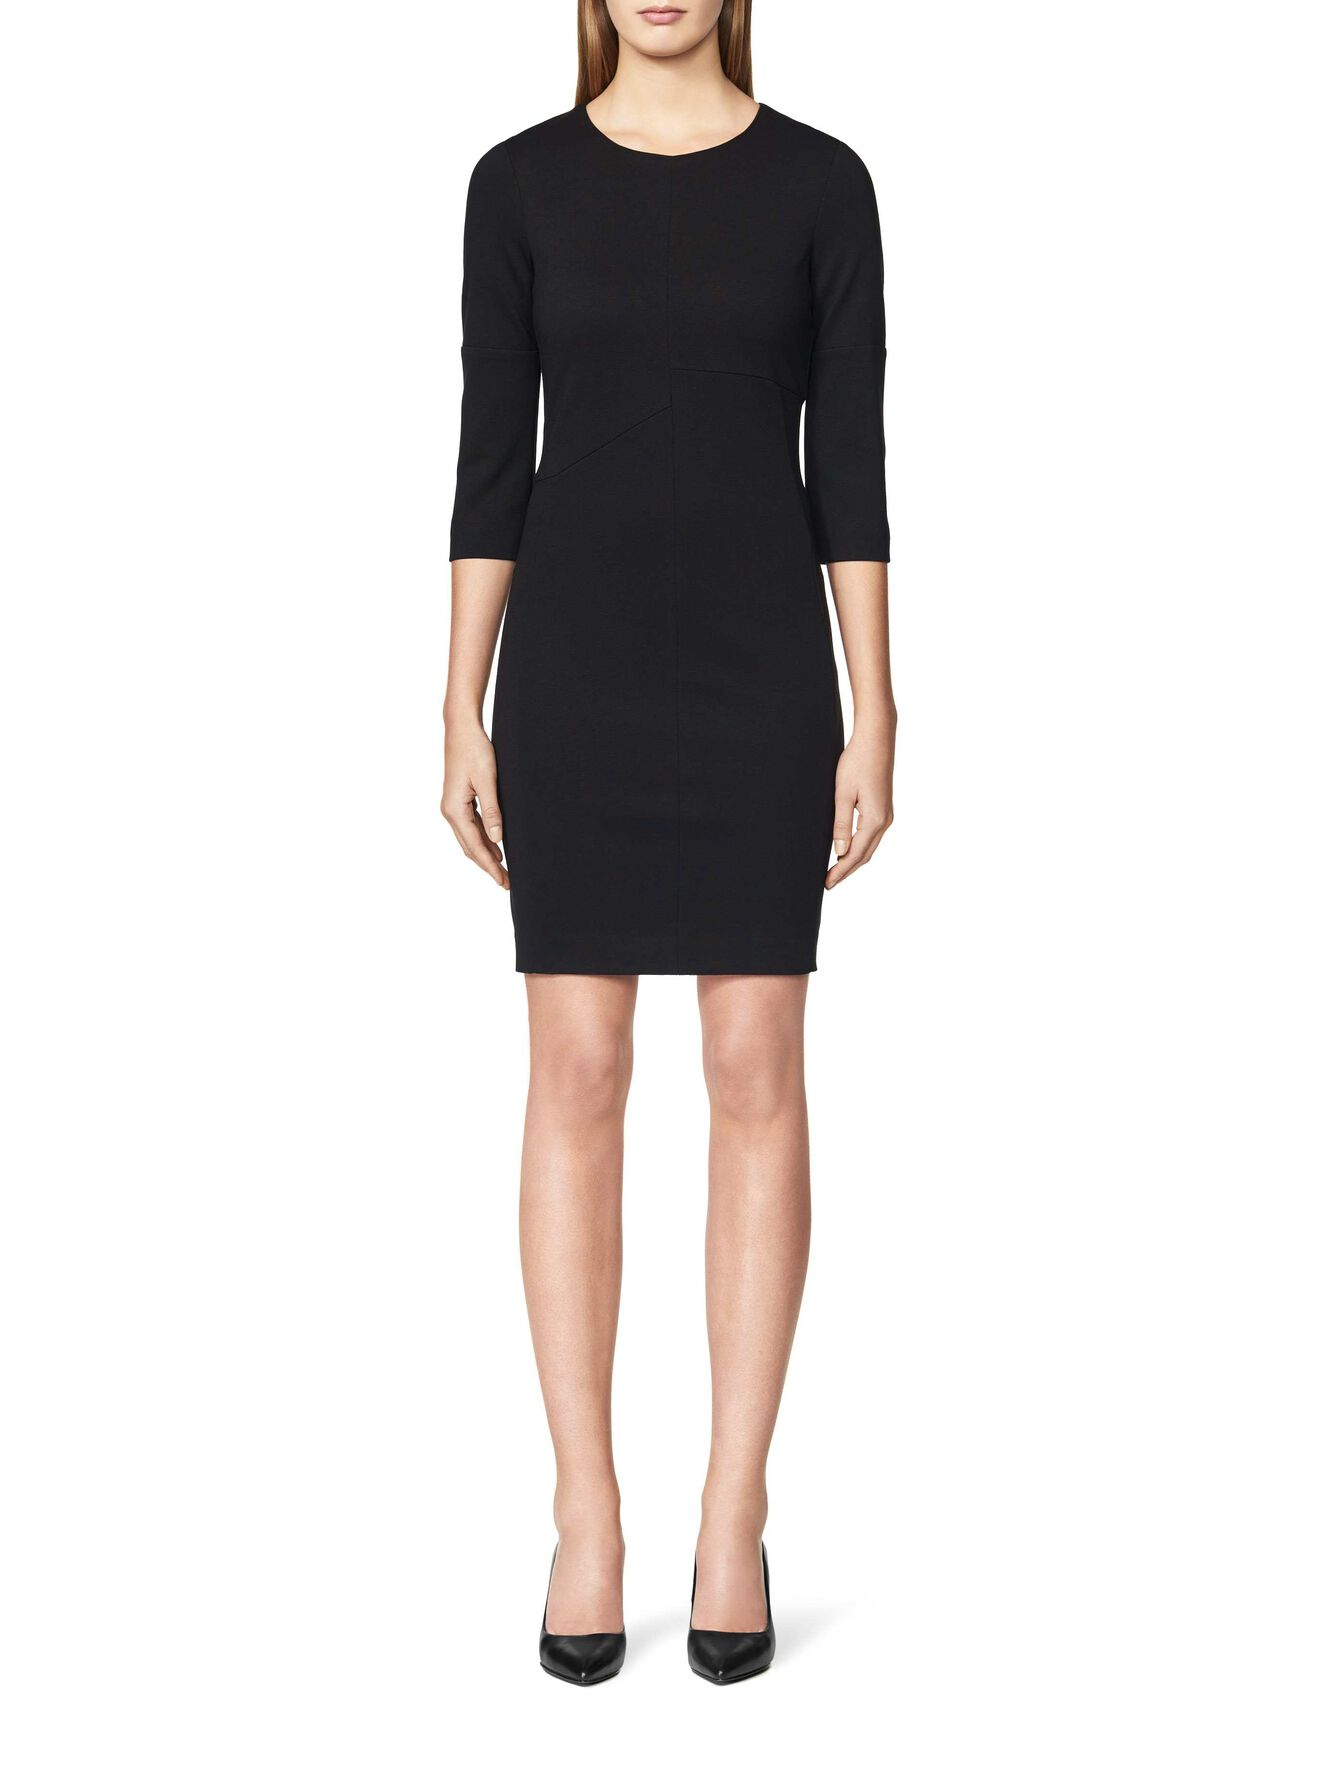 Maee S dress in Black from Tiger of Sweden